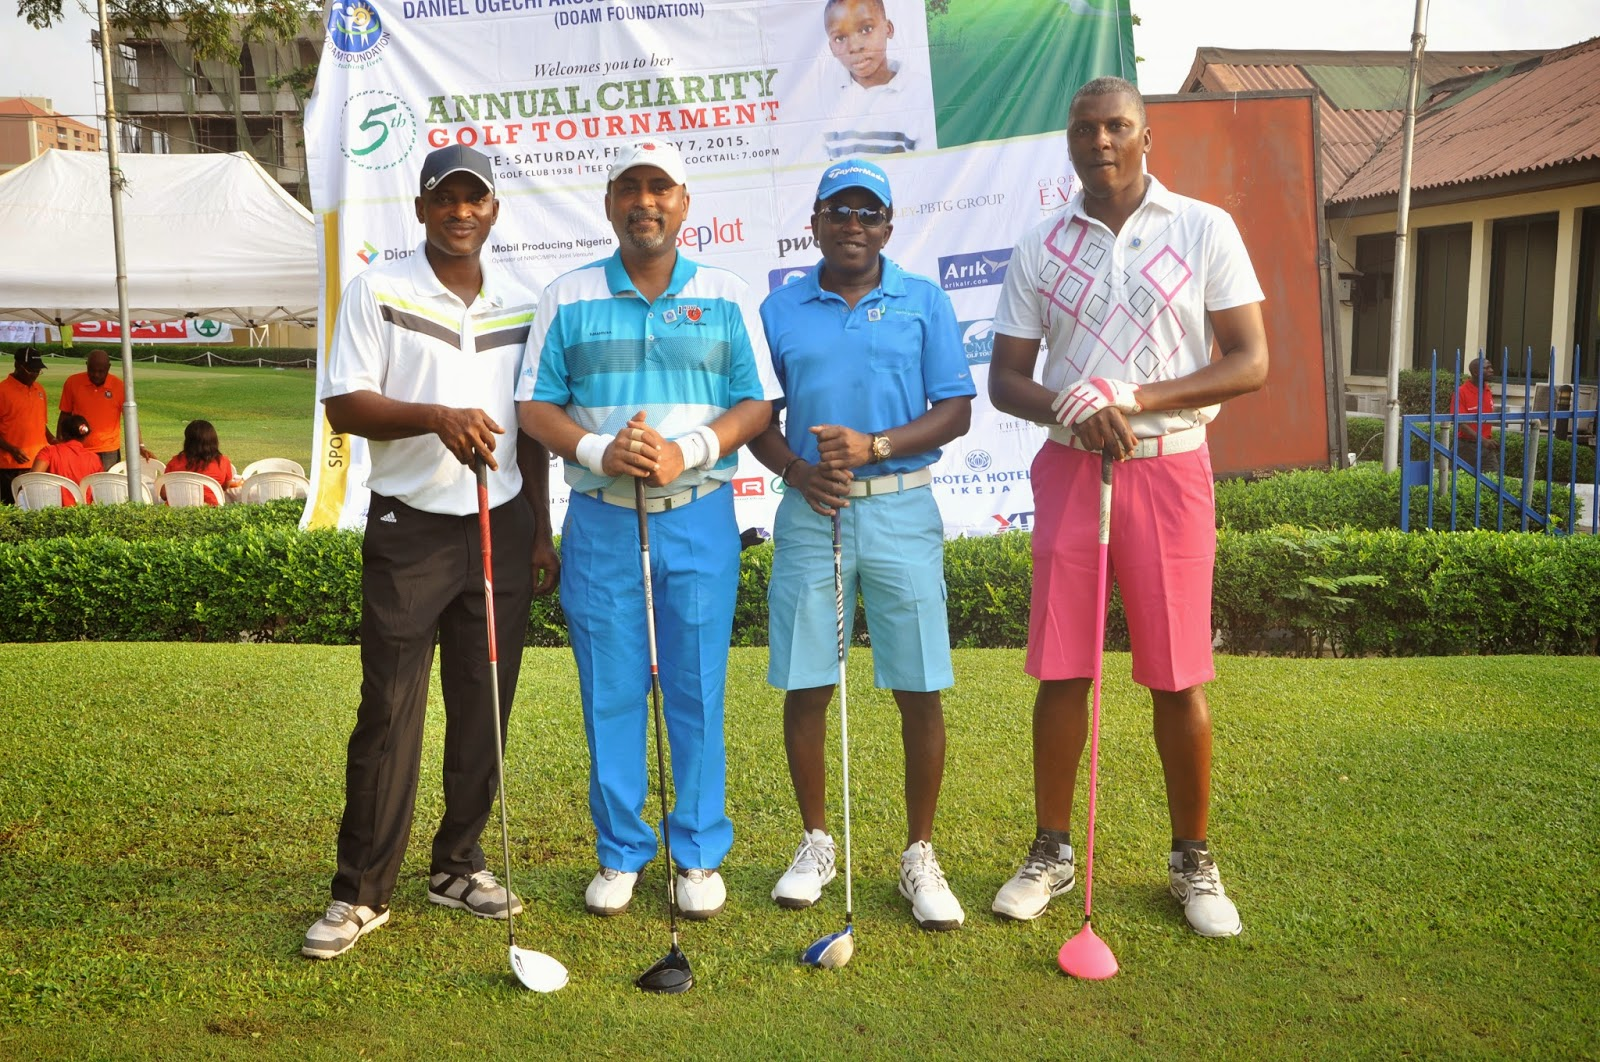 Golfers converge on Ikoyi club for charity club